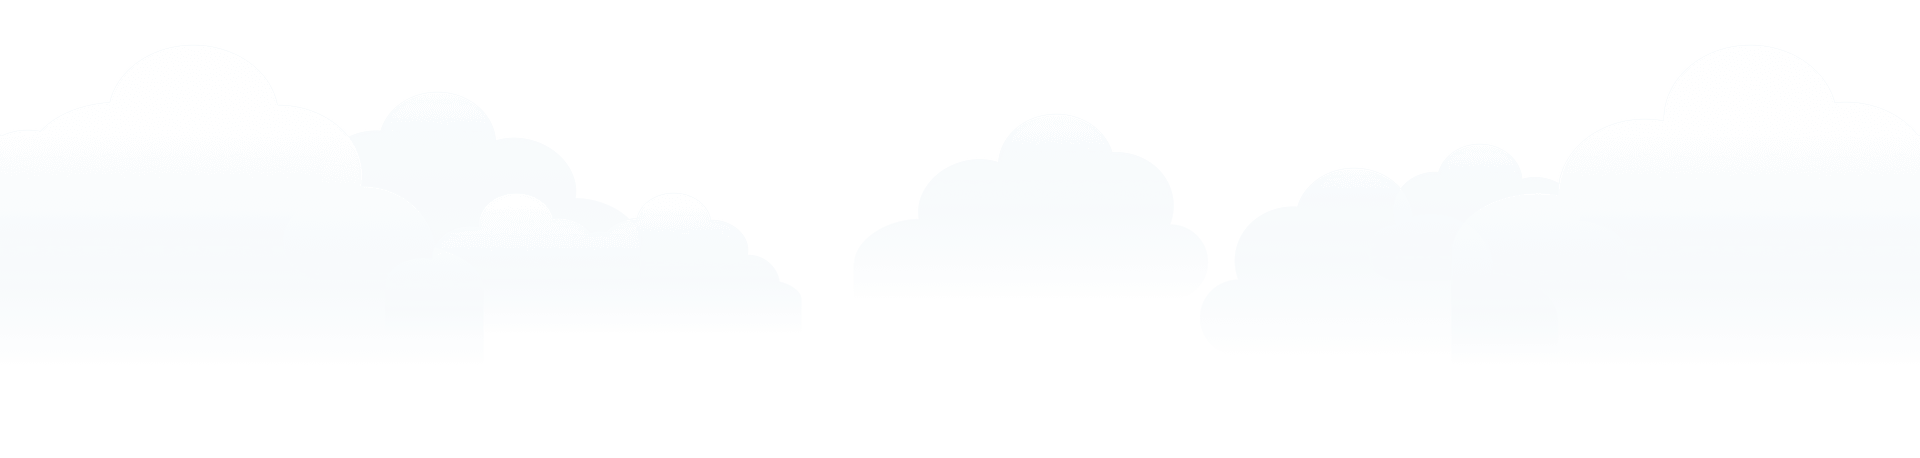 cloud layer for background design